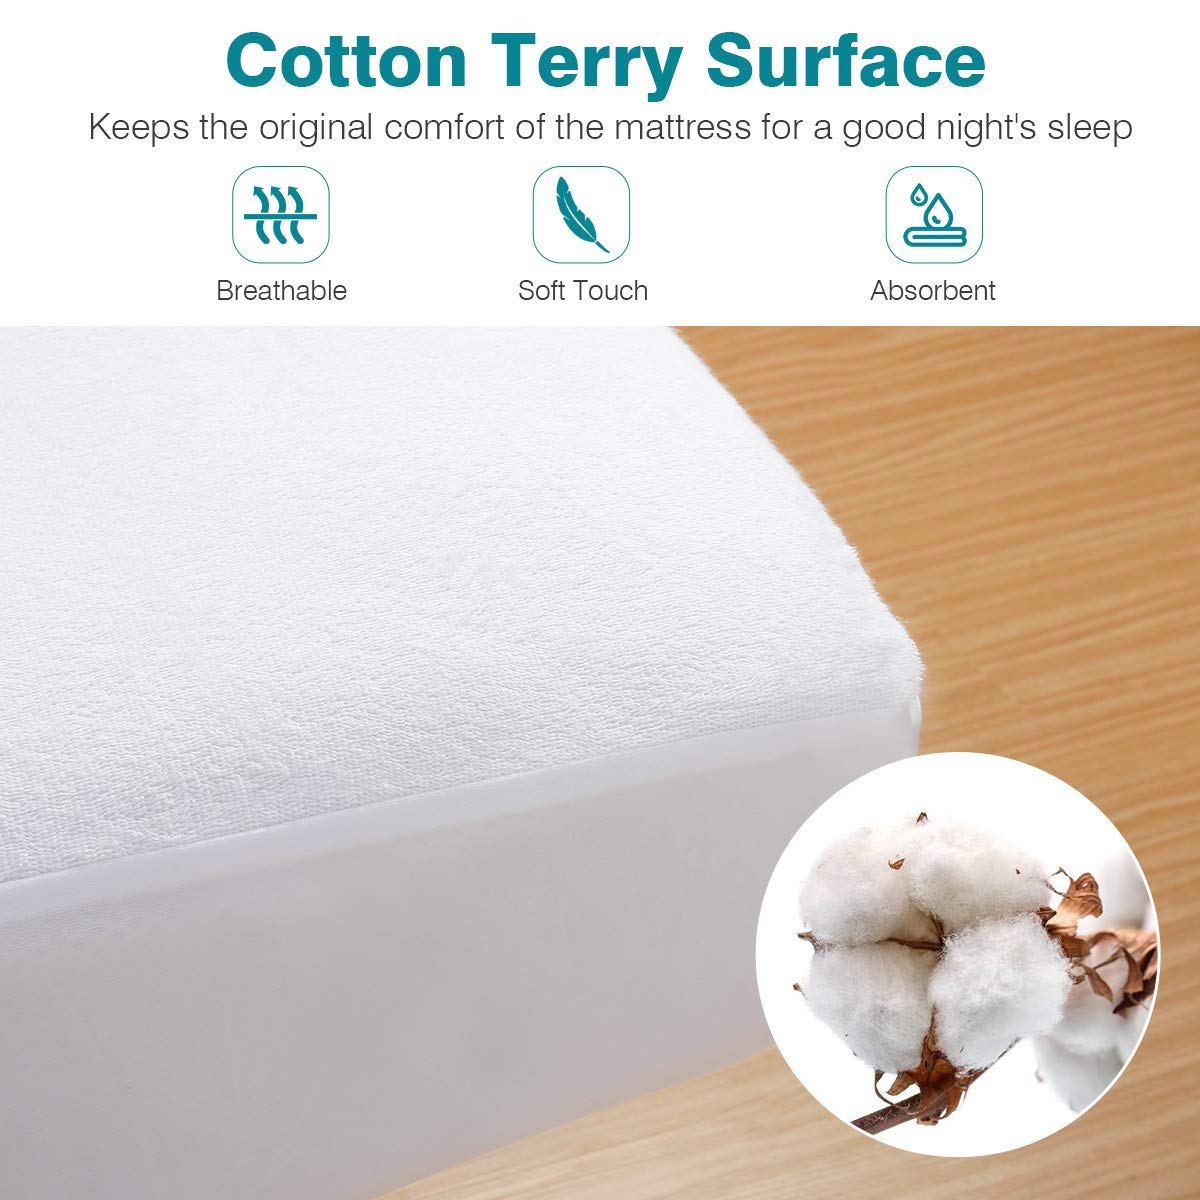 Docamor 100% Waterproof Mattress Protector, Hypoallergenic Mattress Cover with Premium Cotton Terry Surface - Vinyl Free - King Size - 3 Year Warranty by Docamor (Image #4)